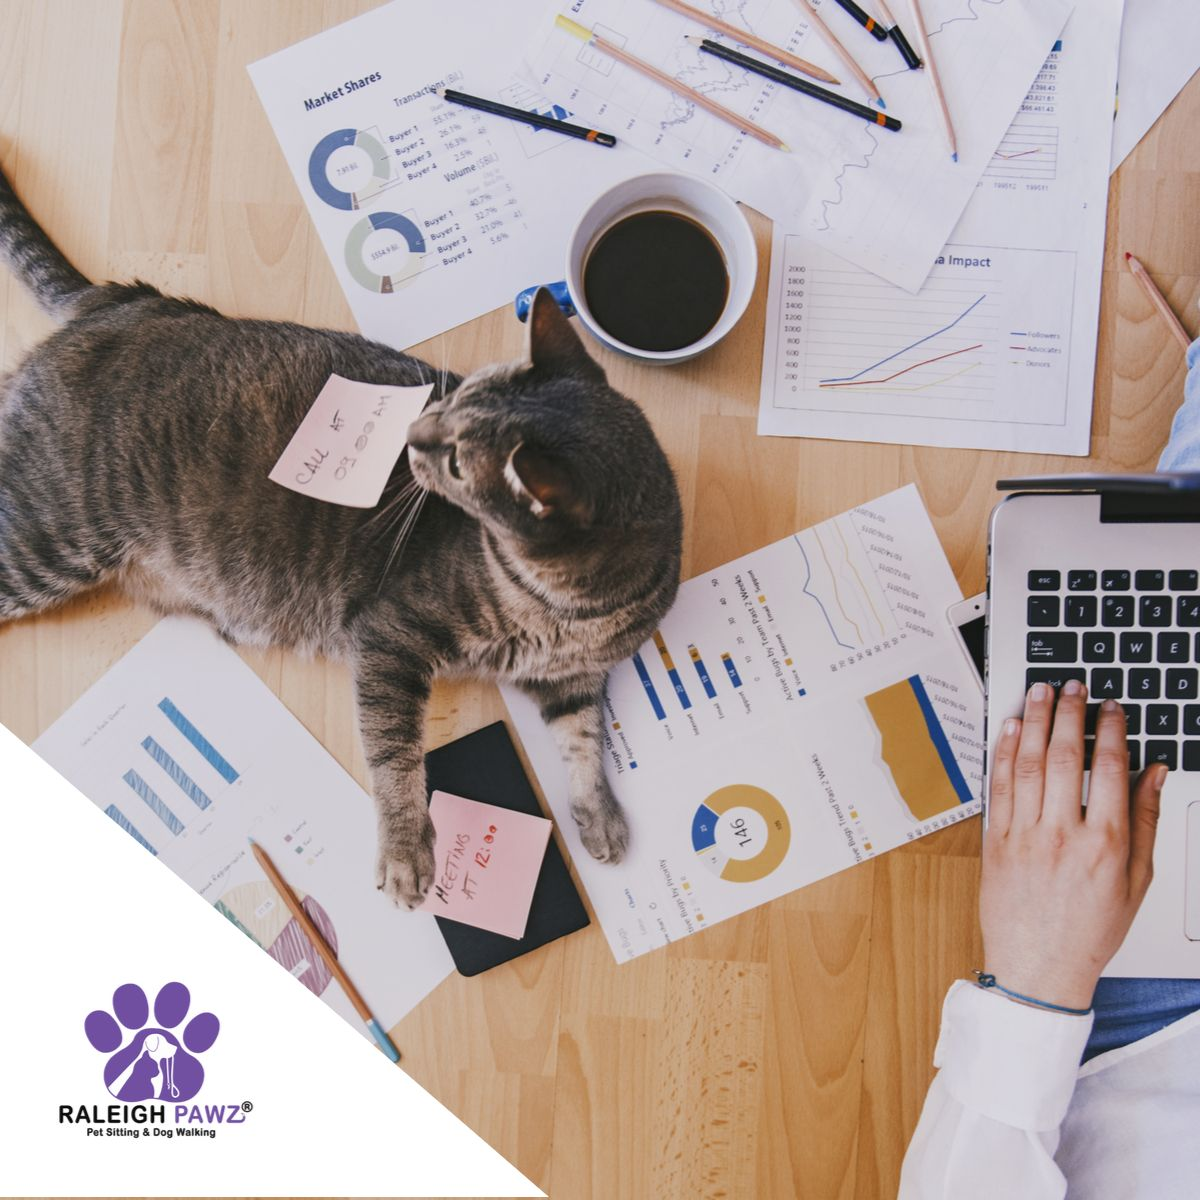 Have you been working from home lately?  How is your fur baby reacting?  #workingfromhome #petlife pic.twitter.com/c1FdiJAw3I